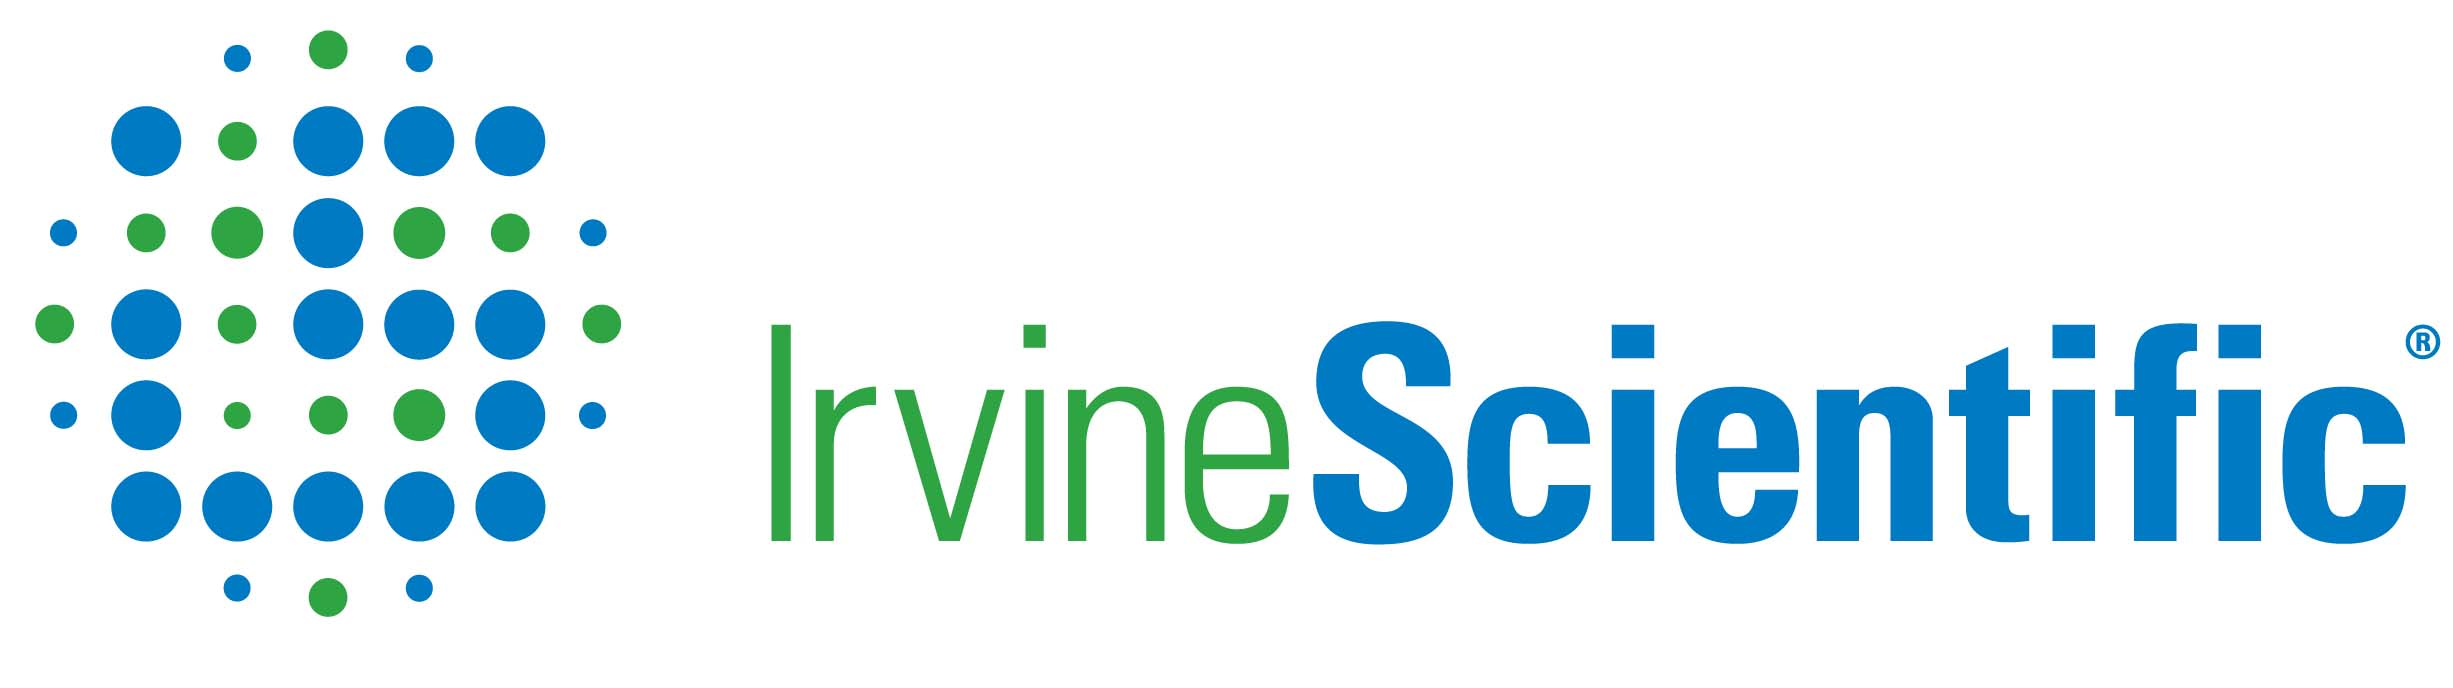 irvinescientific.jpg